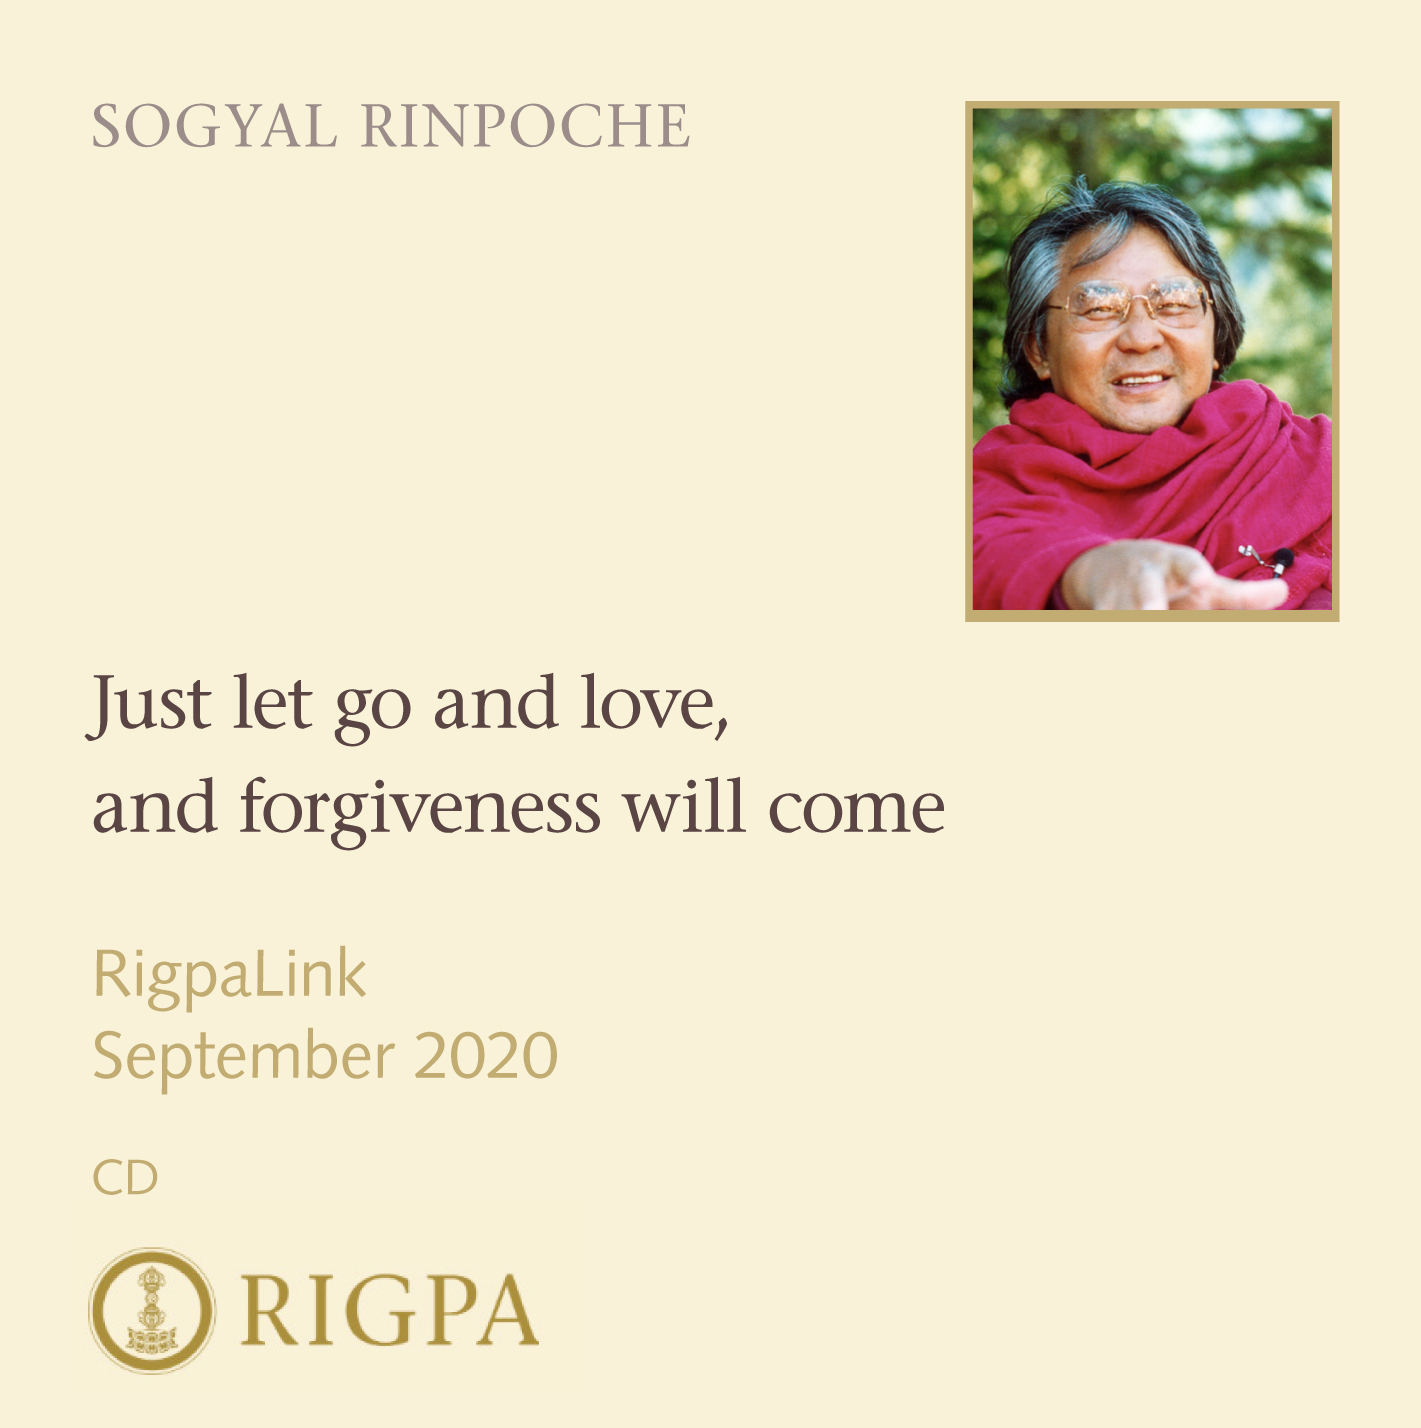 Just let go and love, and forgiveness will come - Sogyal Rinpoche audio or video